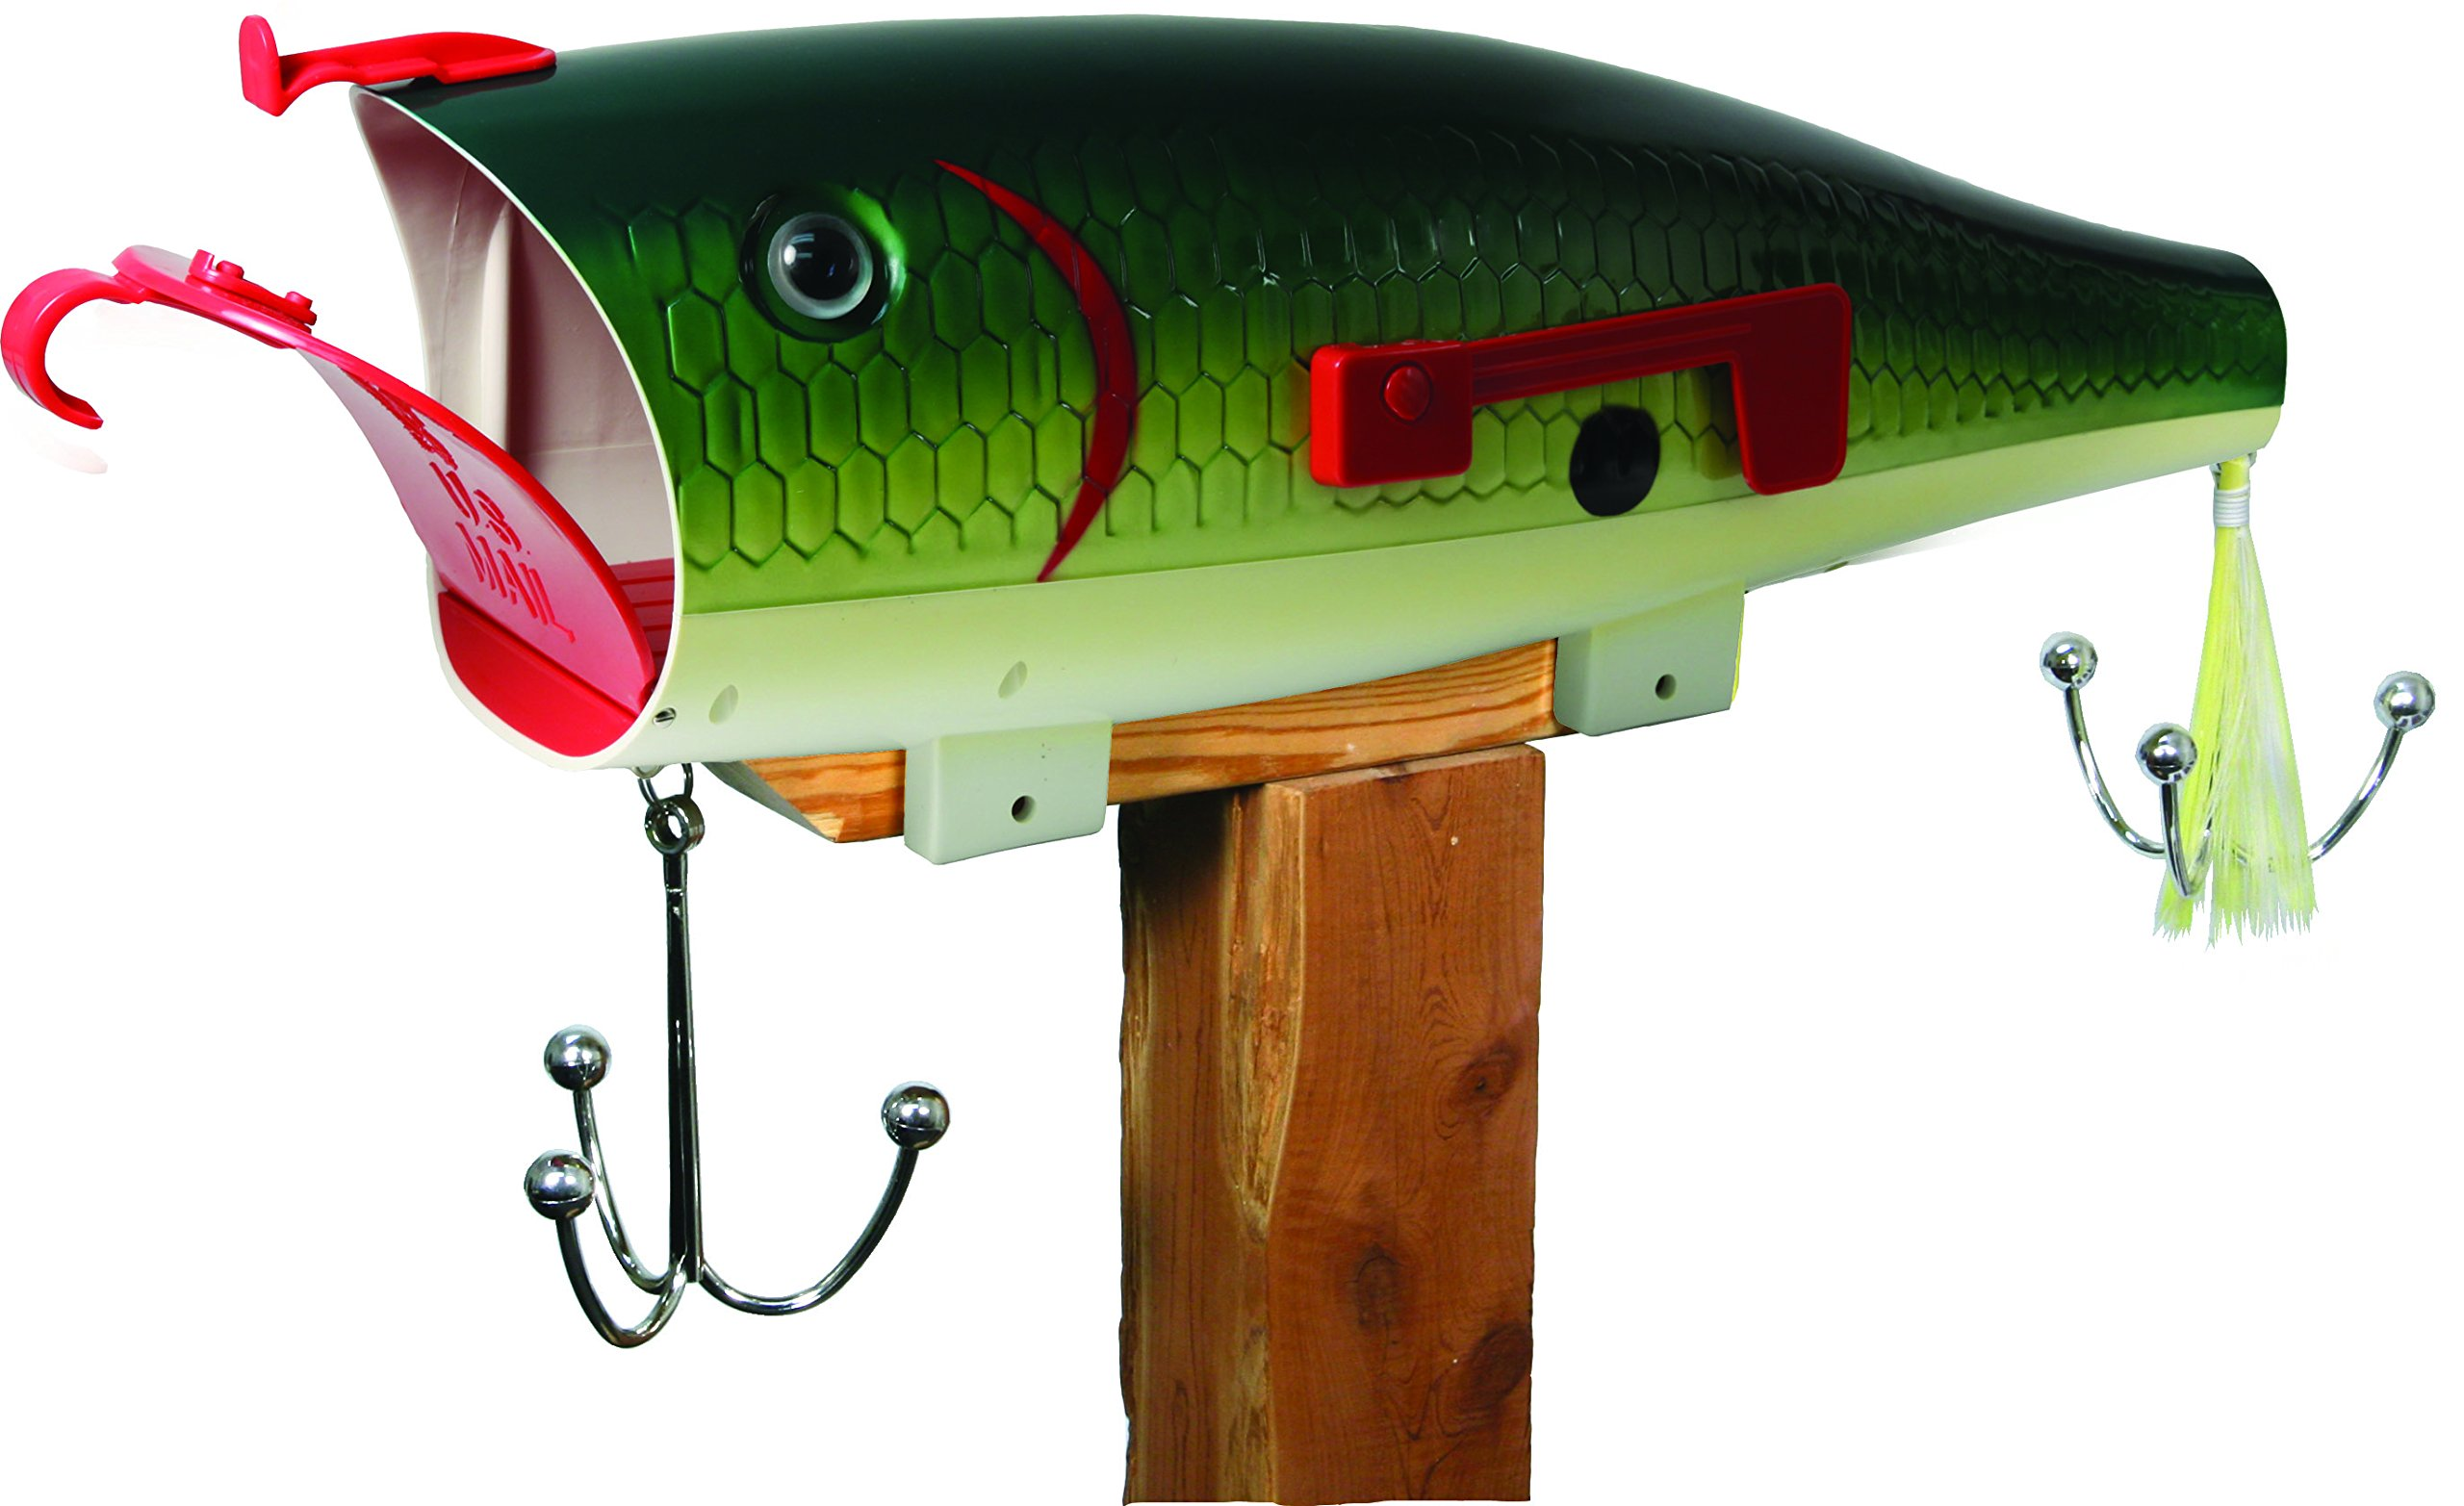 River's Edge Products REP Giant Lure Mailbox Bass Exclusive Color